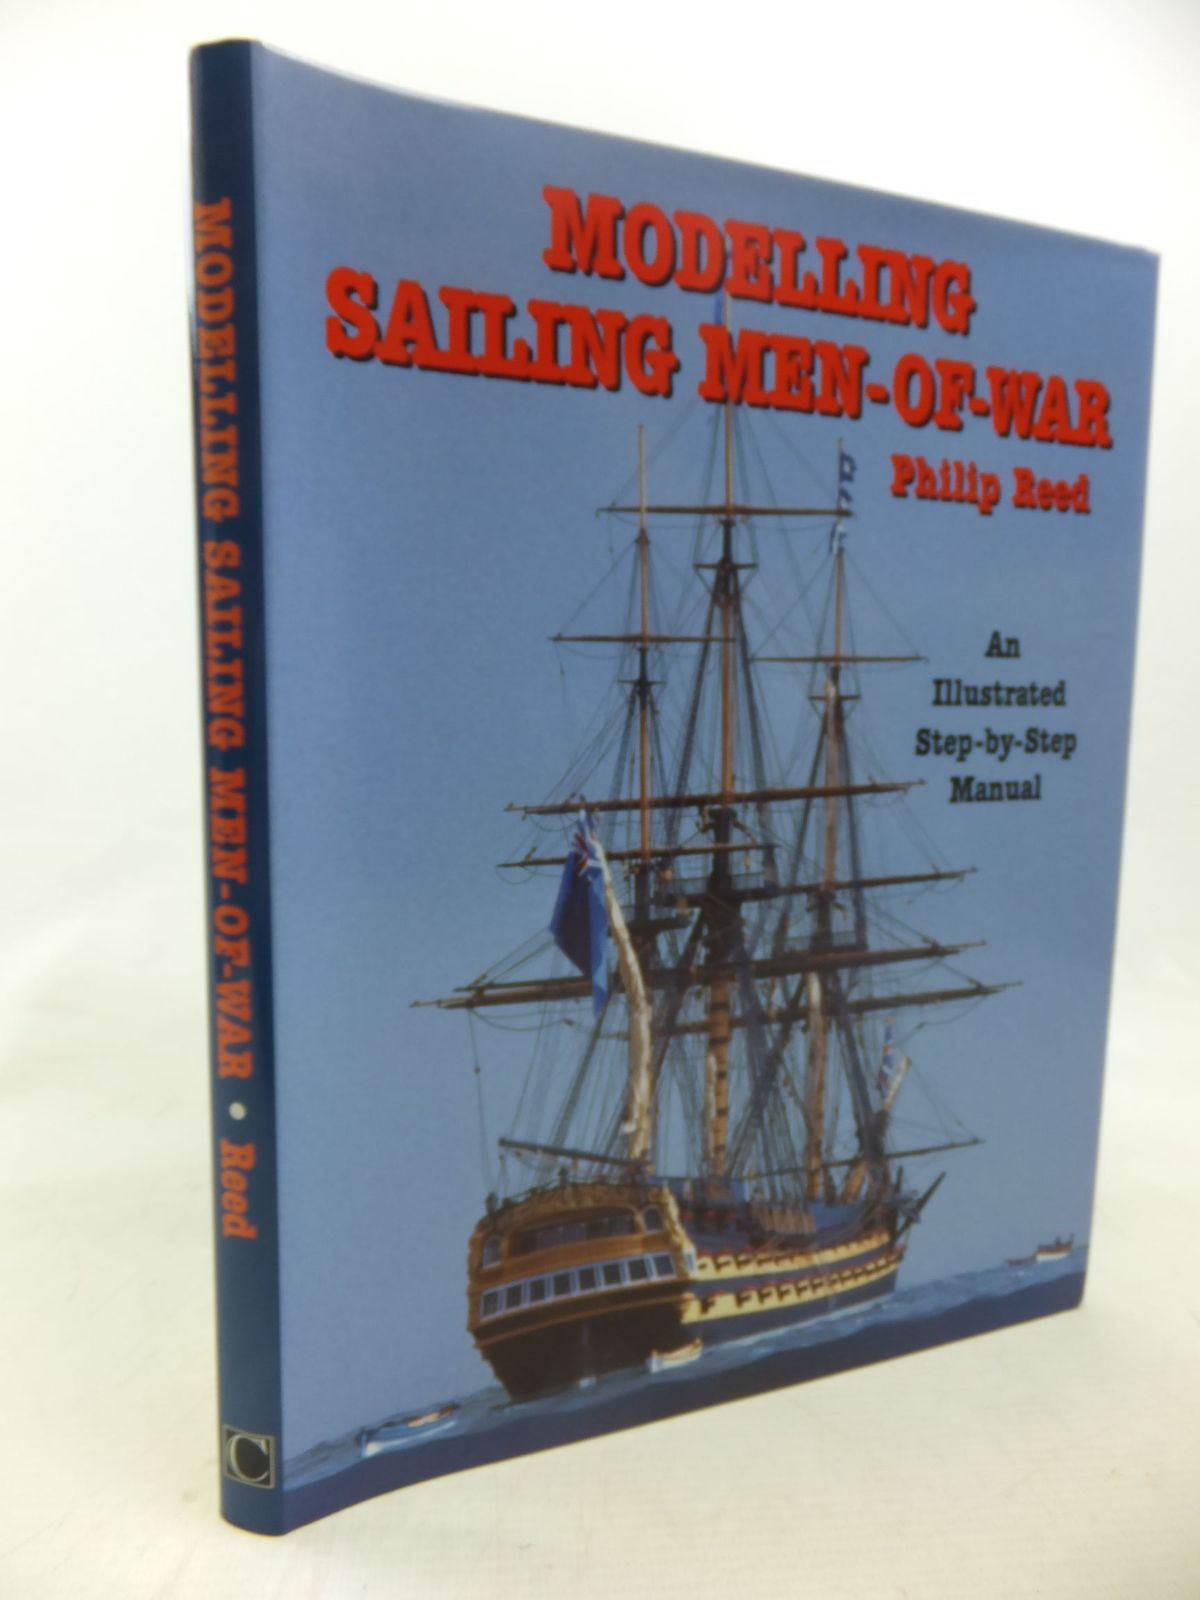 Photo of MODELLING SAILING MEN-OF-WAR AN ILLUSTRATED STEP-BY-STEP GUIDE written by Reed, Philip published by Chatham Publishing (STOCK CODE: 2117800)  for sale by Stella & Rose's Books